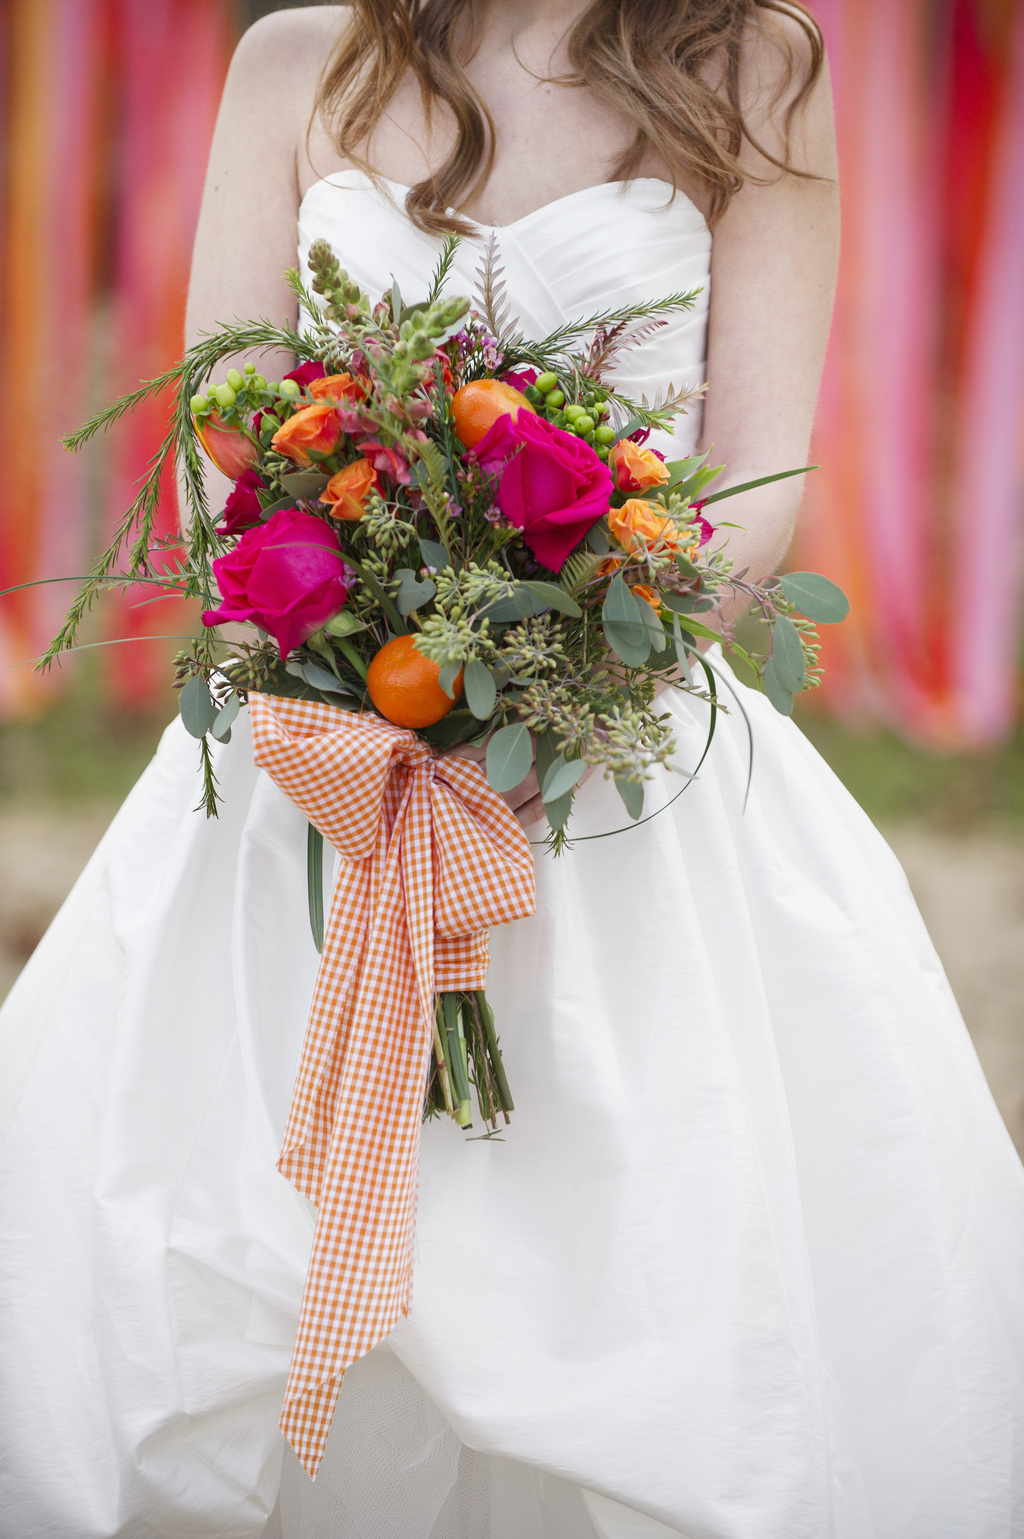 Romantic-bridal-bouquet-rustic-country-chic.full